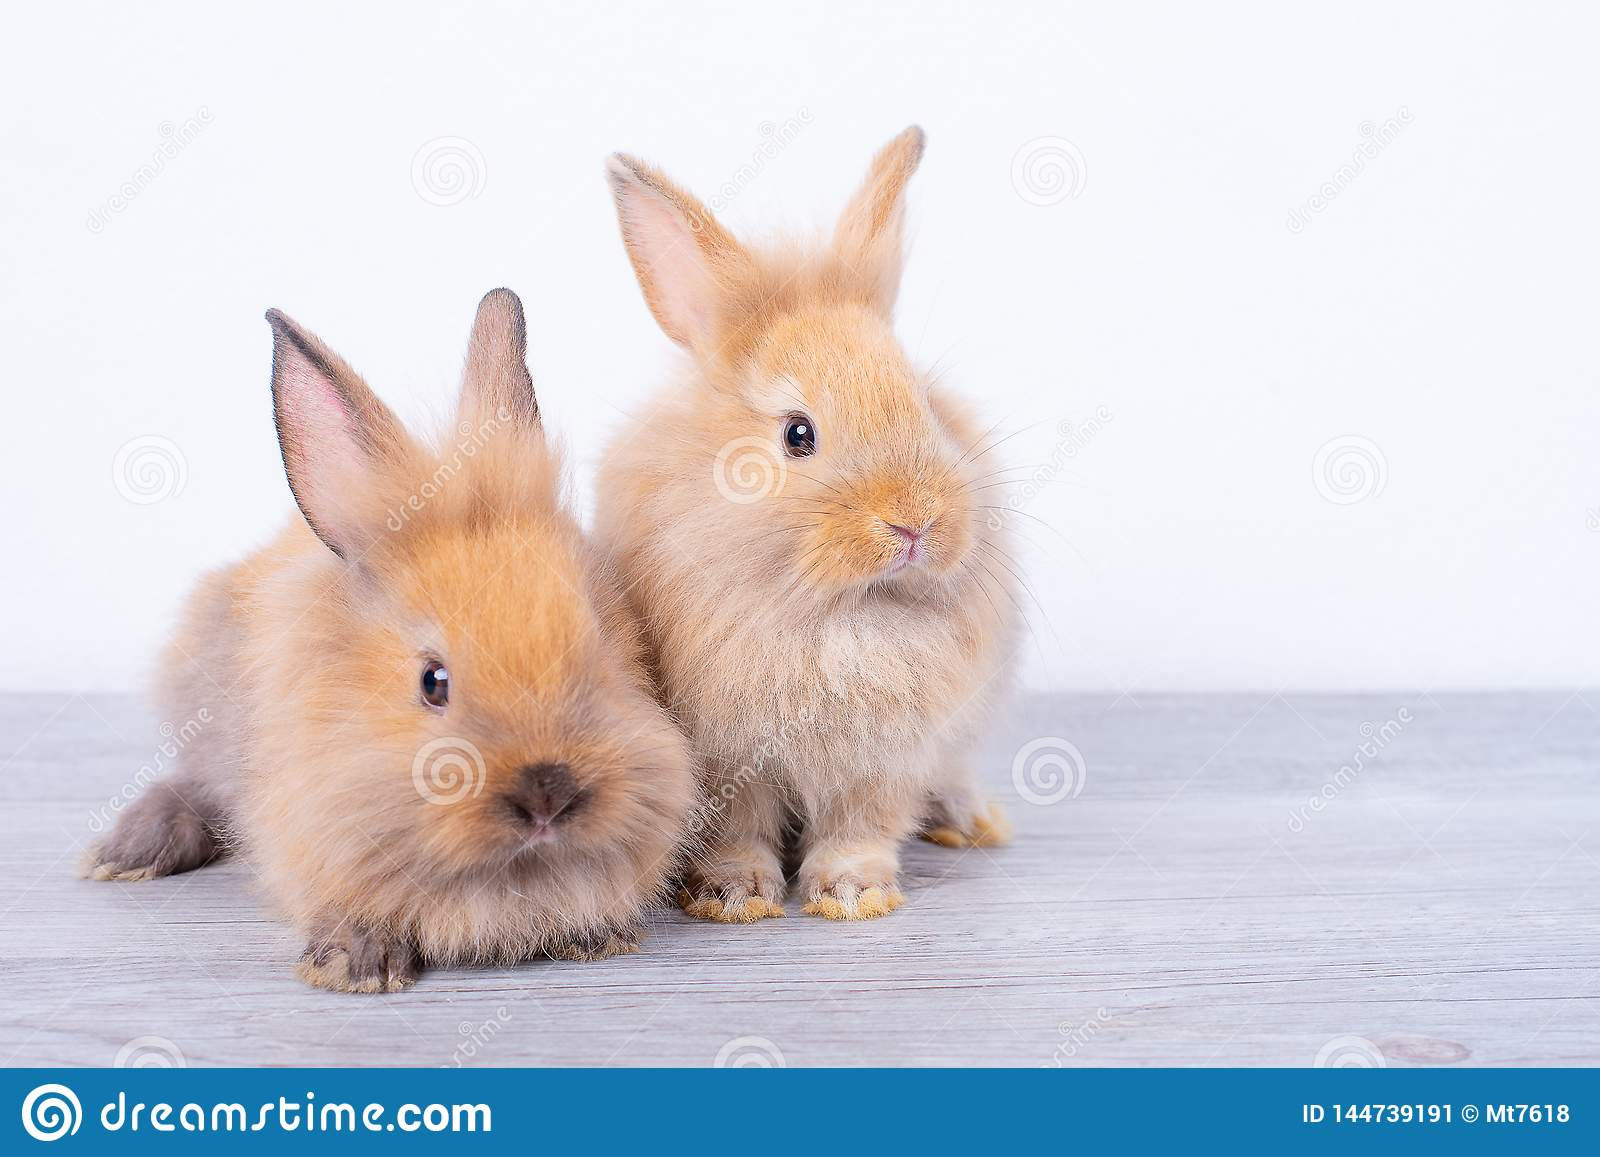 Couple small light brown rabbits stay on gray wood table with white background